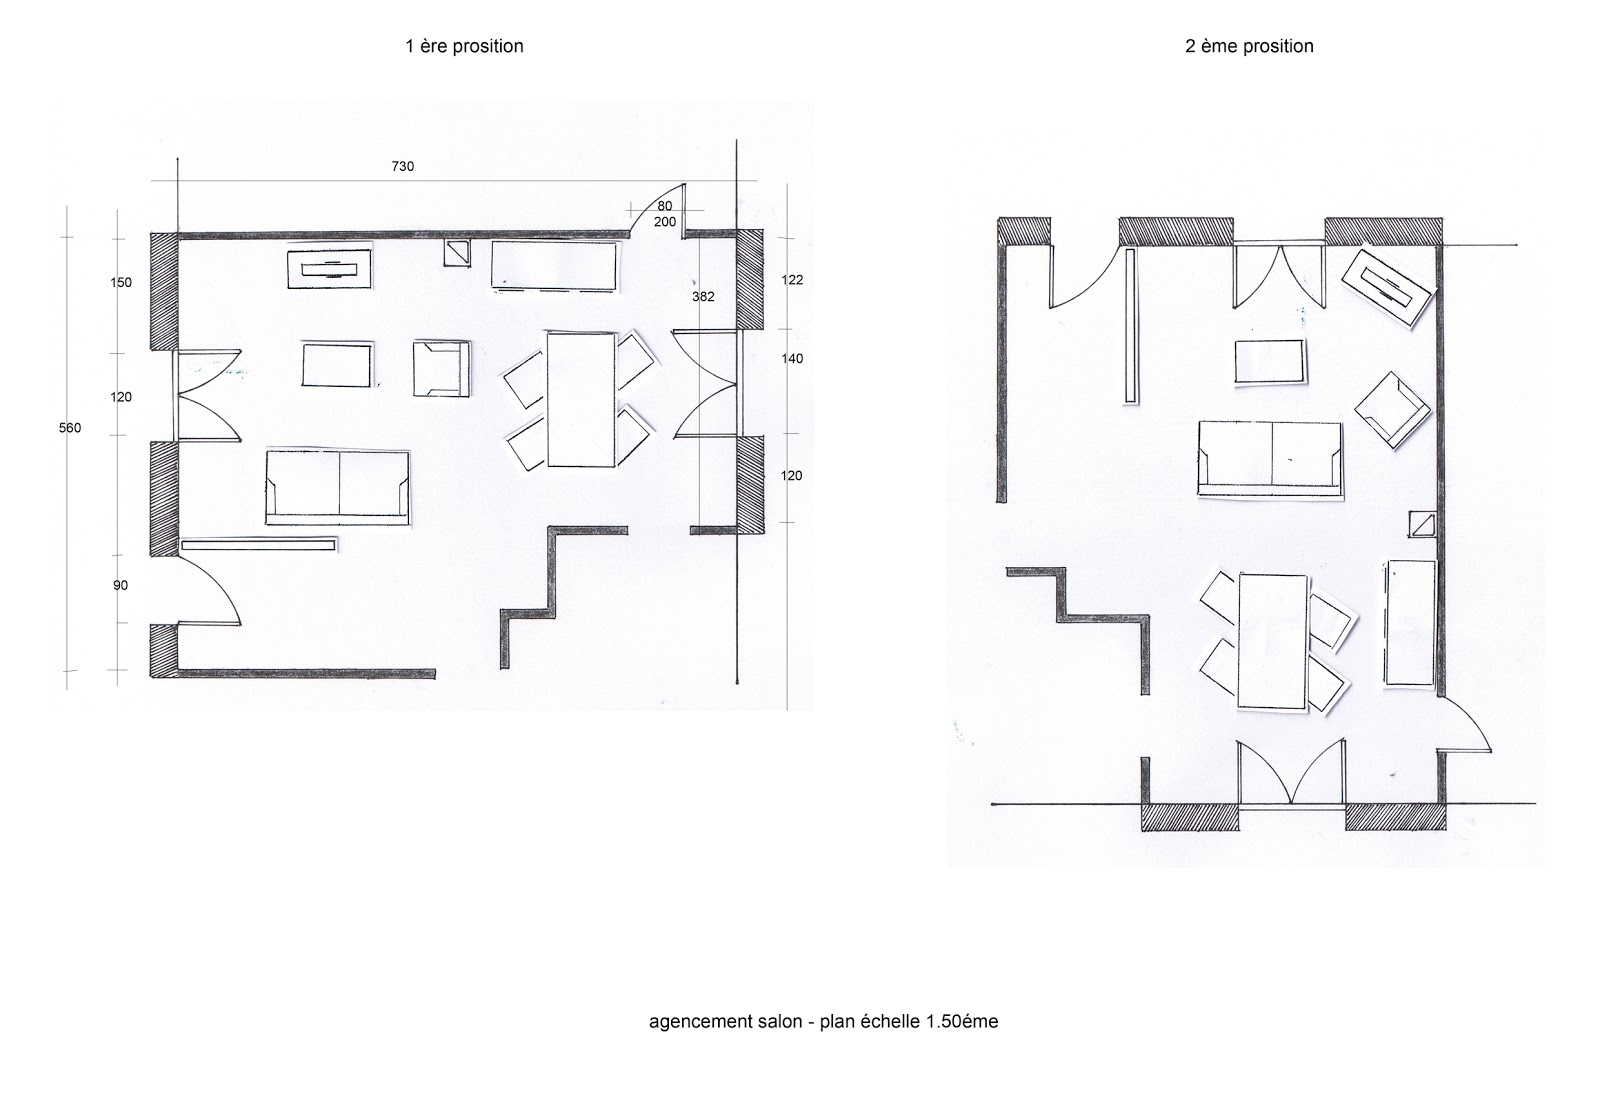 Home d co d coration d 39 int rieur id e d co et tude pour l 39 am nagem - Plan amenagement salon ...